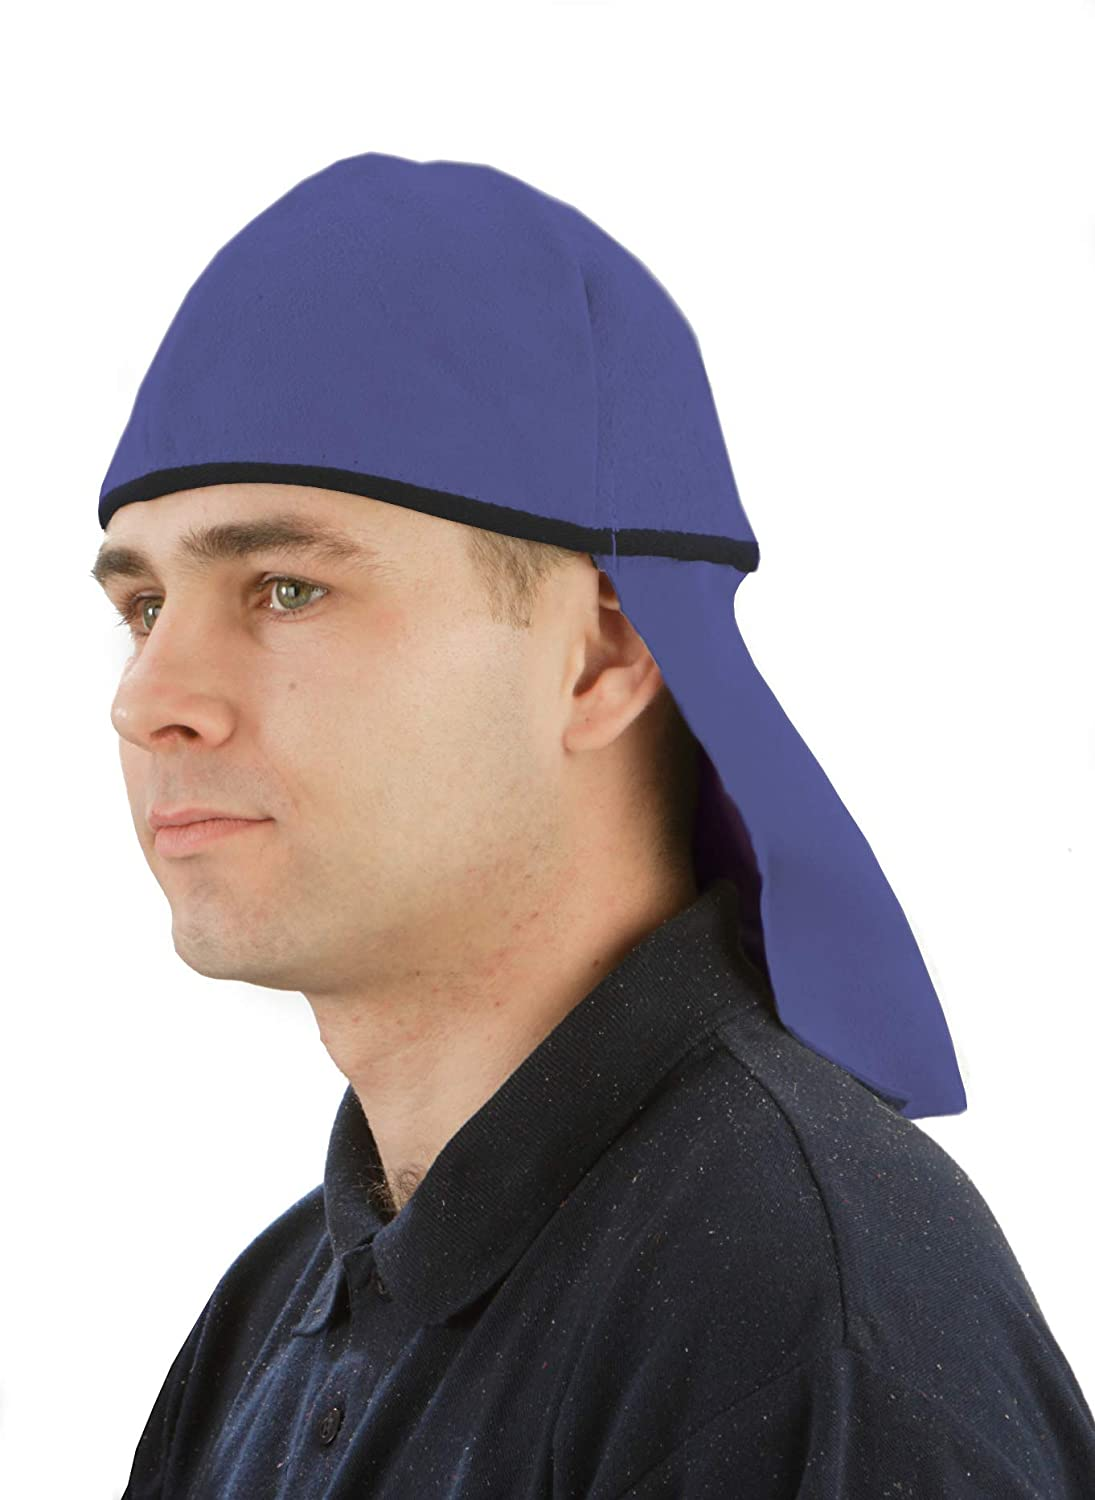 Heavy Duty TUSKER INDUSTRIAL SAFETY Leather Skullcap with Back Flap Fire Retardant